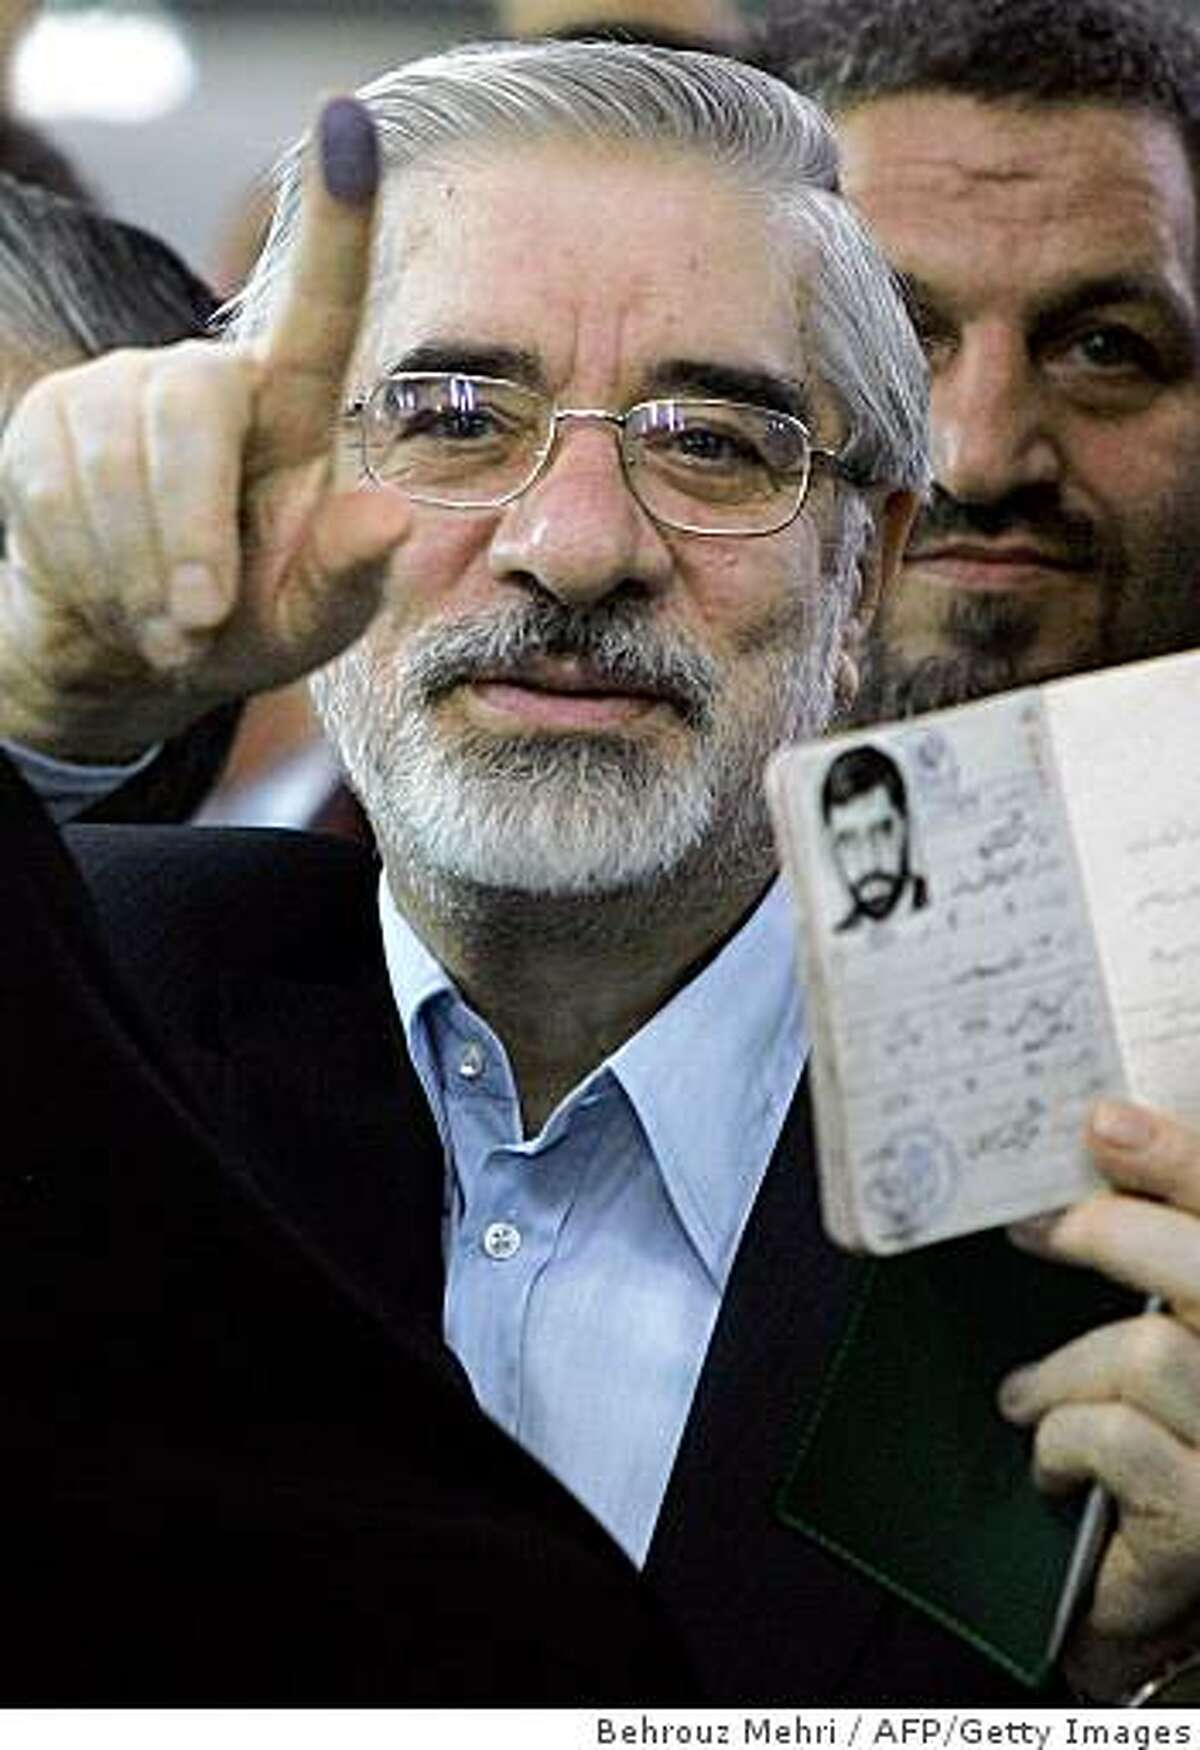 (FILES) Former Iranian Prime Minister and presidential candidate, Mir Hossein Mousavi, shows his certification card and ink-stained finger before voting at Ershad mosque in south of Tehran on June 12, 2009. Defeated Mousavi renewed his call on June 20 to cancel the result of last week's disputed election, his campaign website said. AFP PHOTO/BEHROUZ MEHRI (Photo credit should read BEHROUZ MEHRI/AFP/Getty Images)